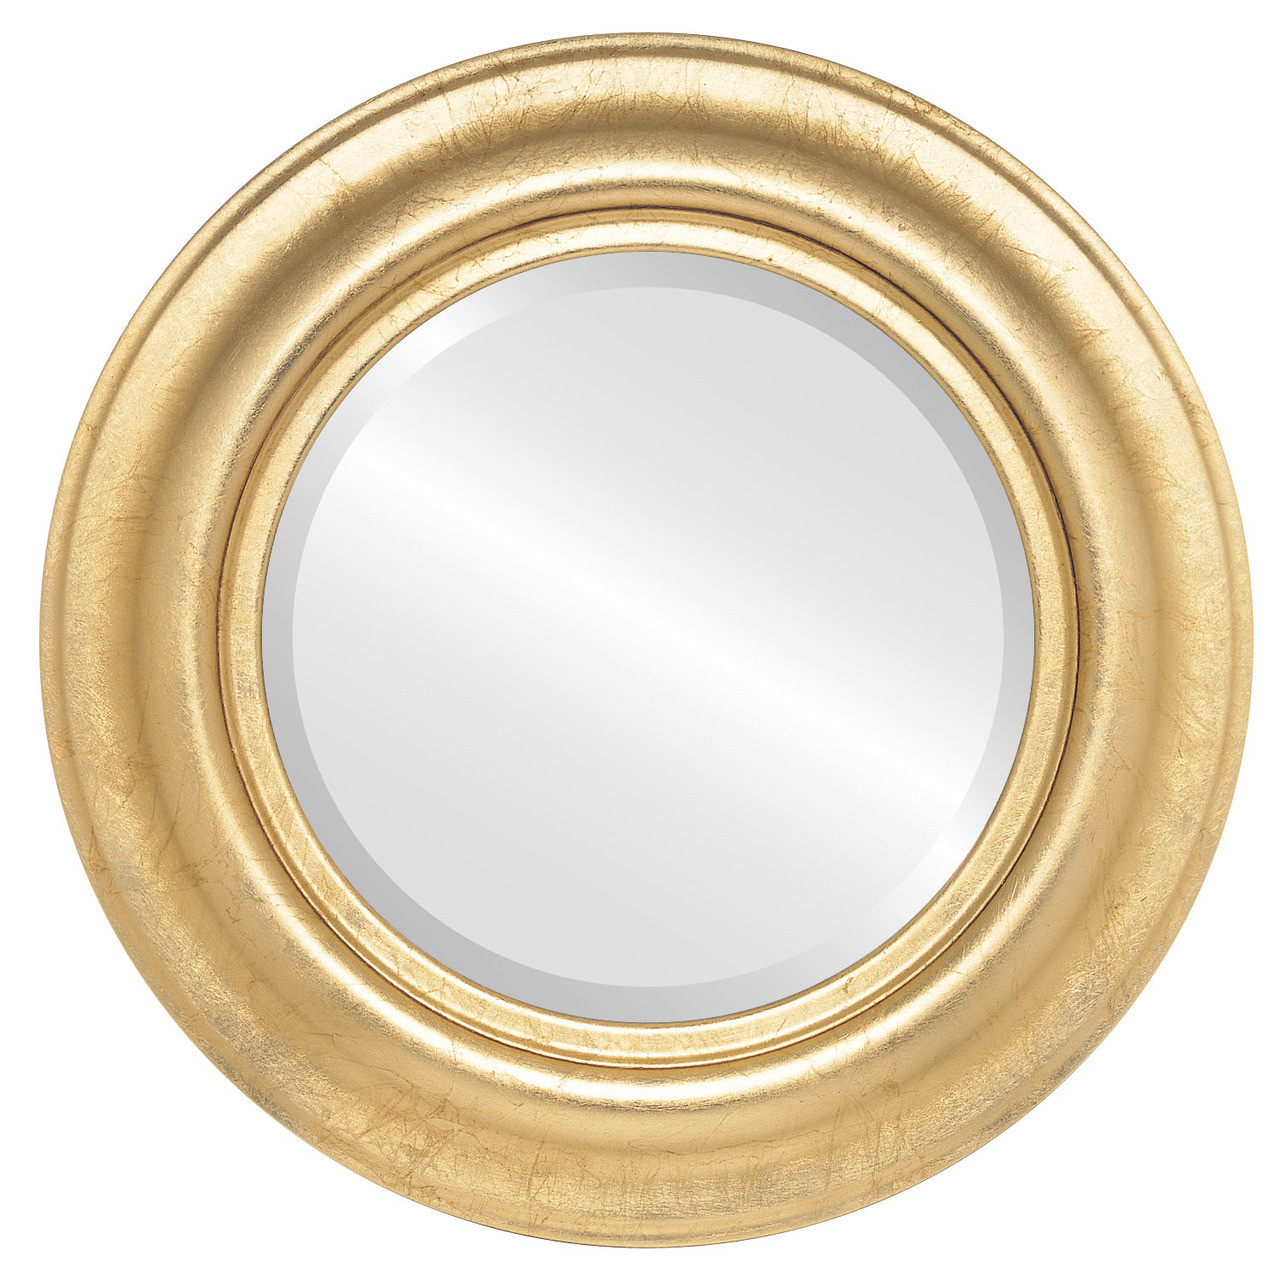 Contemporary Gold Round Mirrors from $142 | Free Shipping